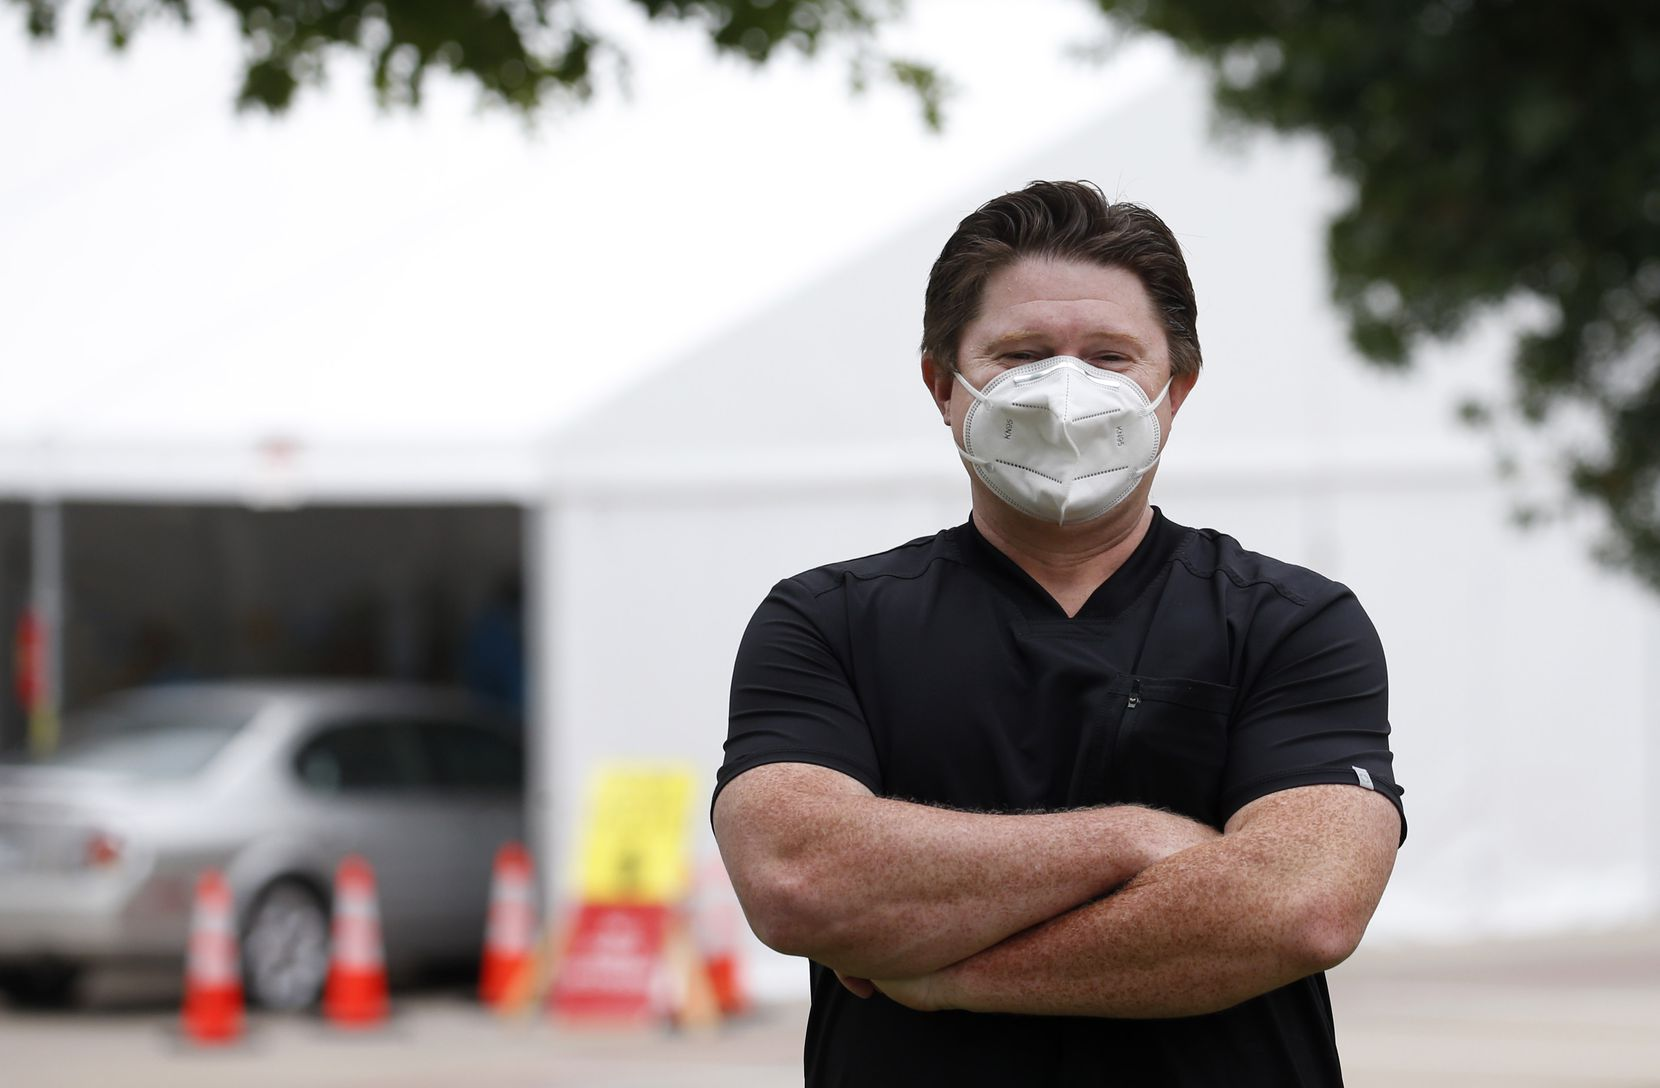 Devin Thornton, CEO of Honu Management Group poses for a photo at the drive-through COVID-19 testing site at the University of Dallas in Irving, Texas on Monday, July 27, 2020. (Vernon Bryant/The Dallas Morning News)